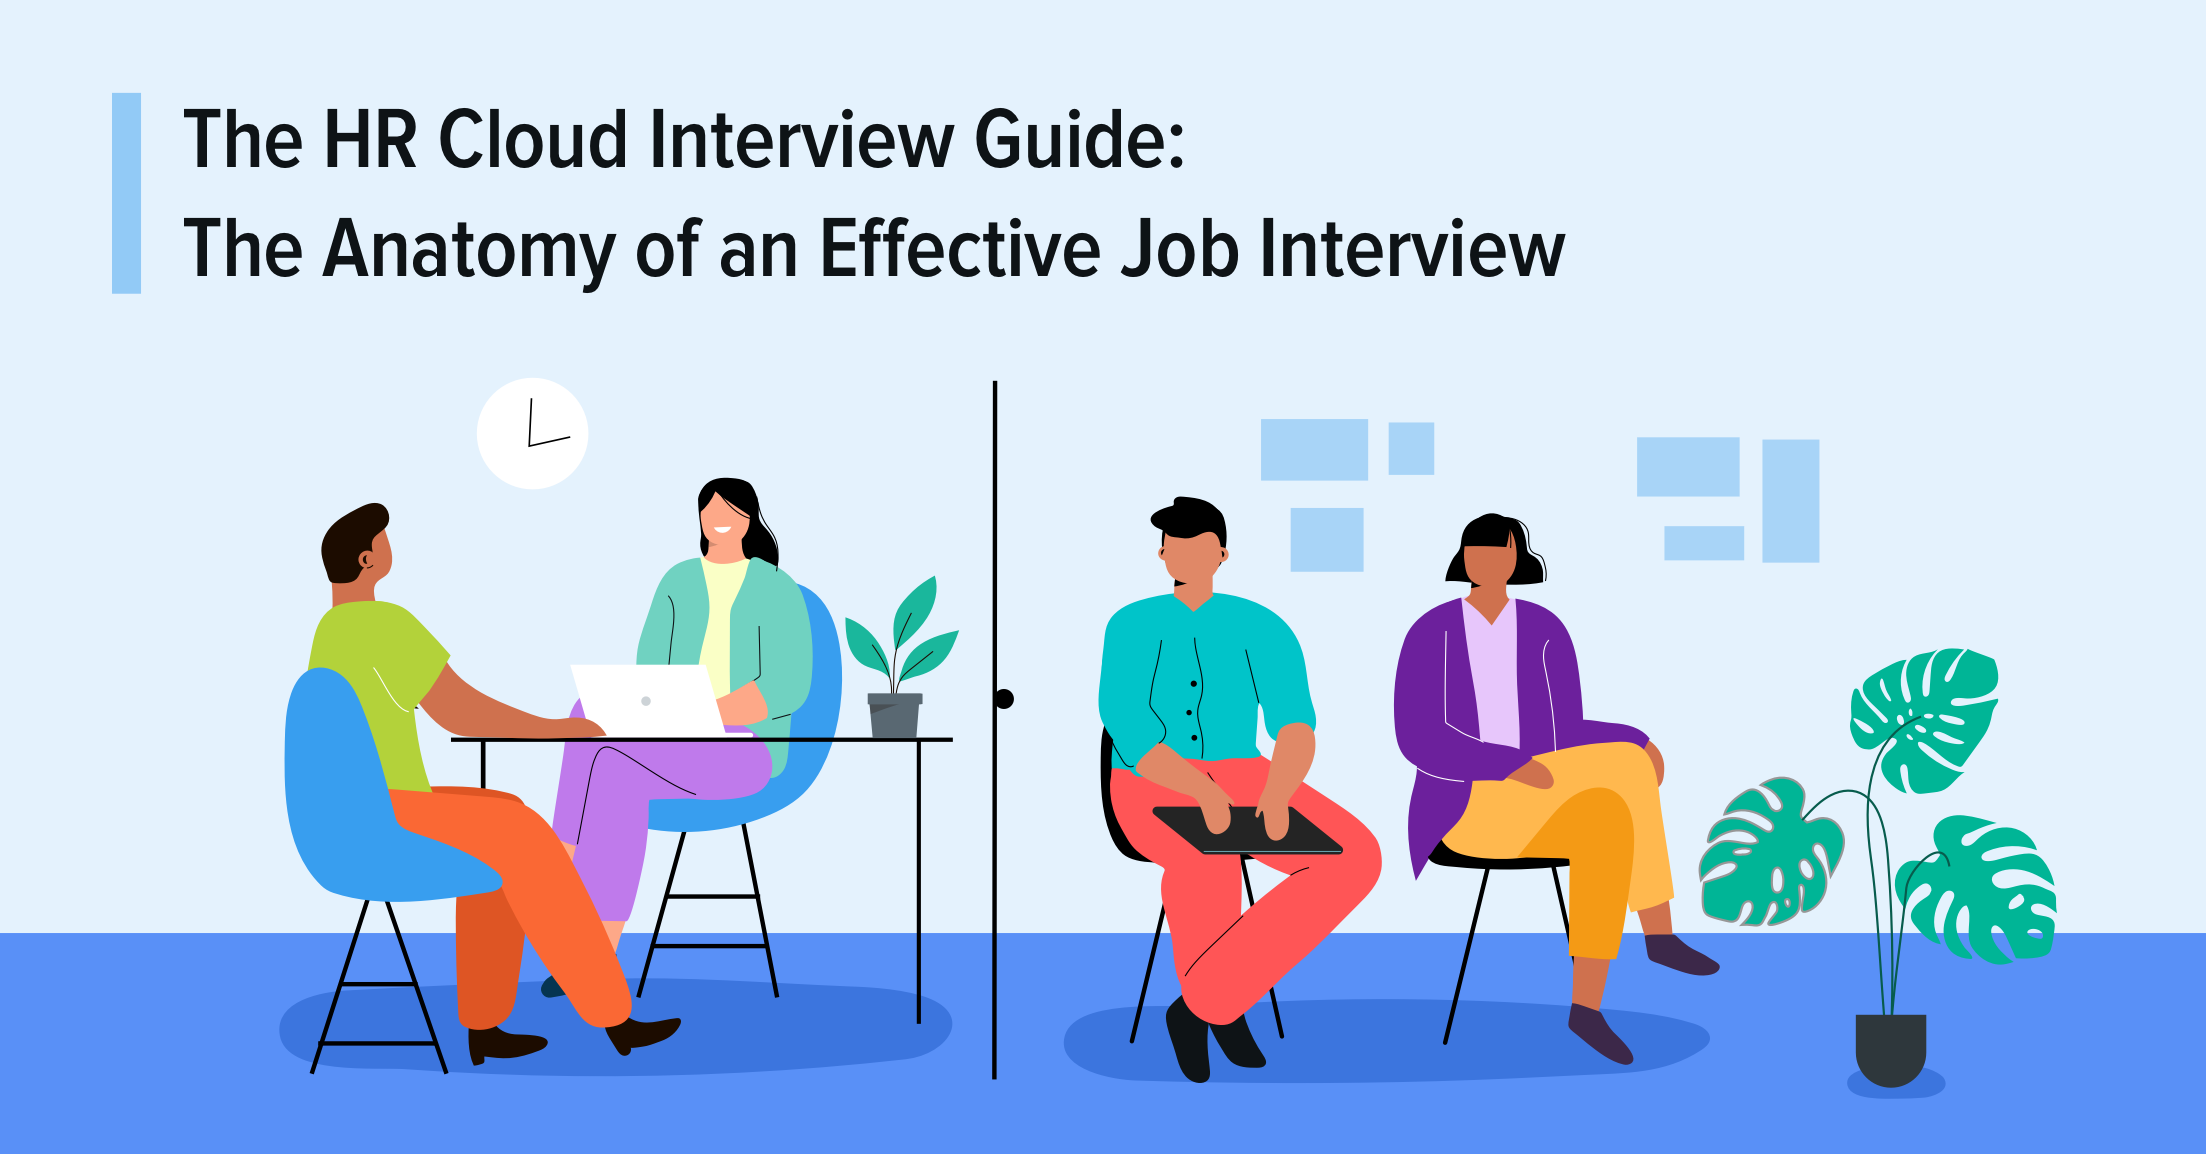 The HR Cloud Interview Guide: The Anatomy of an Effective Job Interview